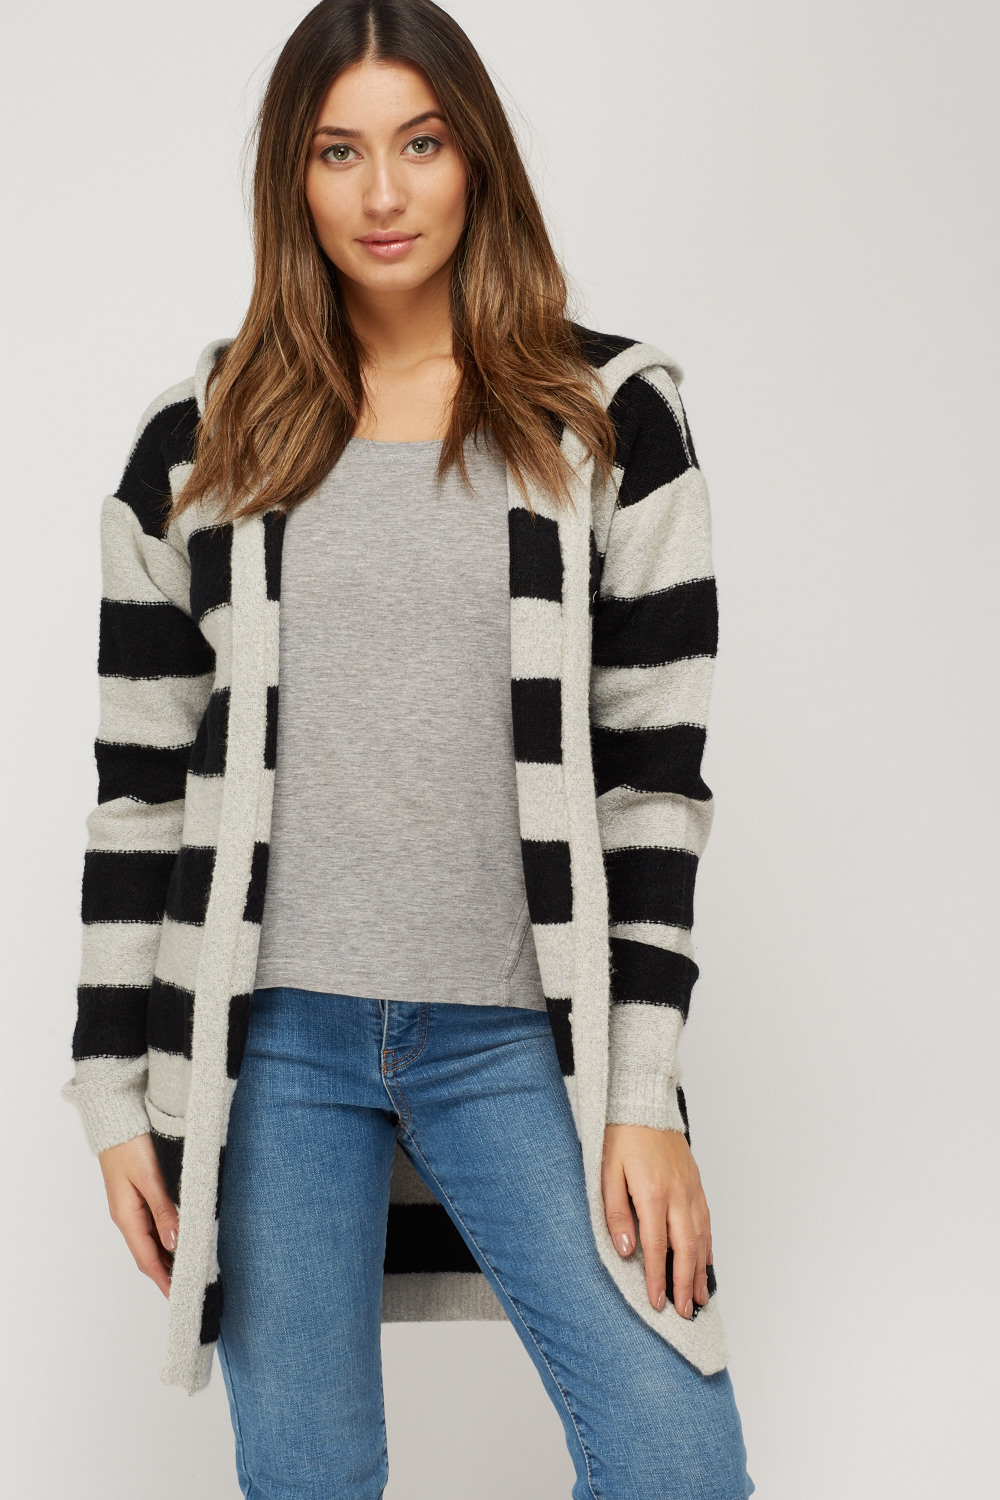 5d37968a43 Striped Knitted Open Front Cardigan - Just £5